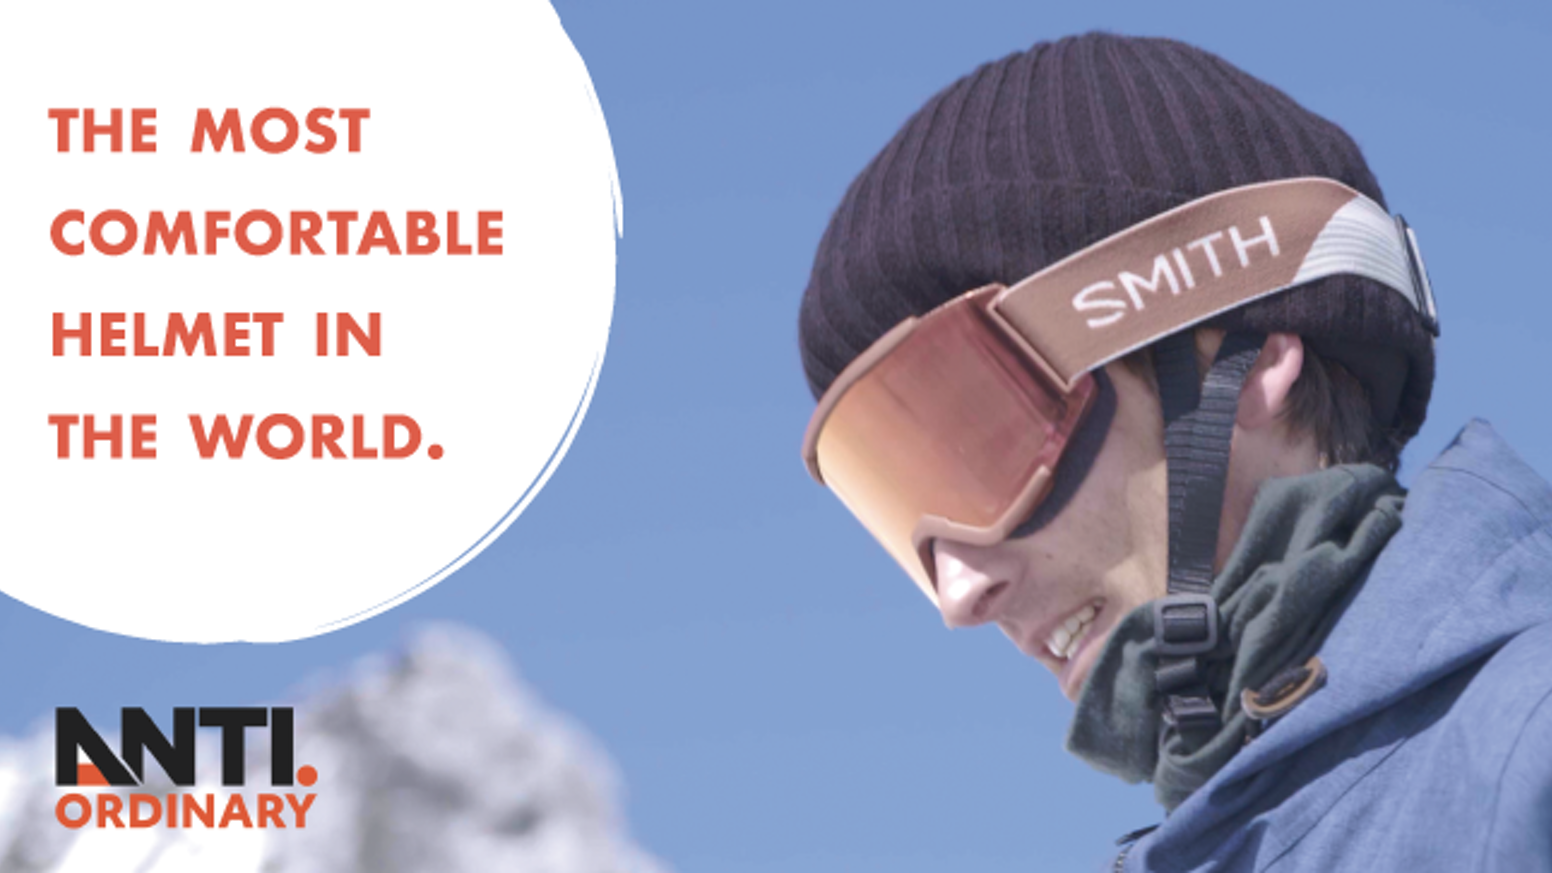 It's a beanie that is as safe as a helmet. The Anti Ordinary A1 is the most comfortable helmet you'll wear to date.